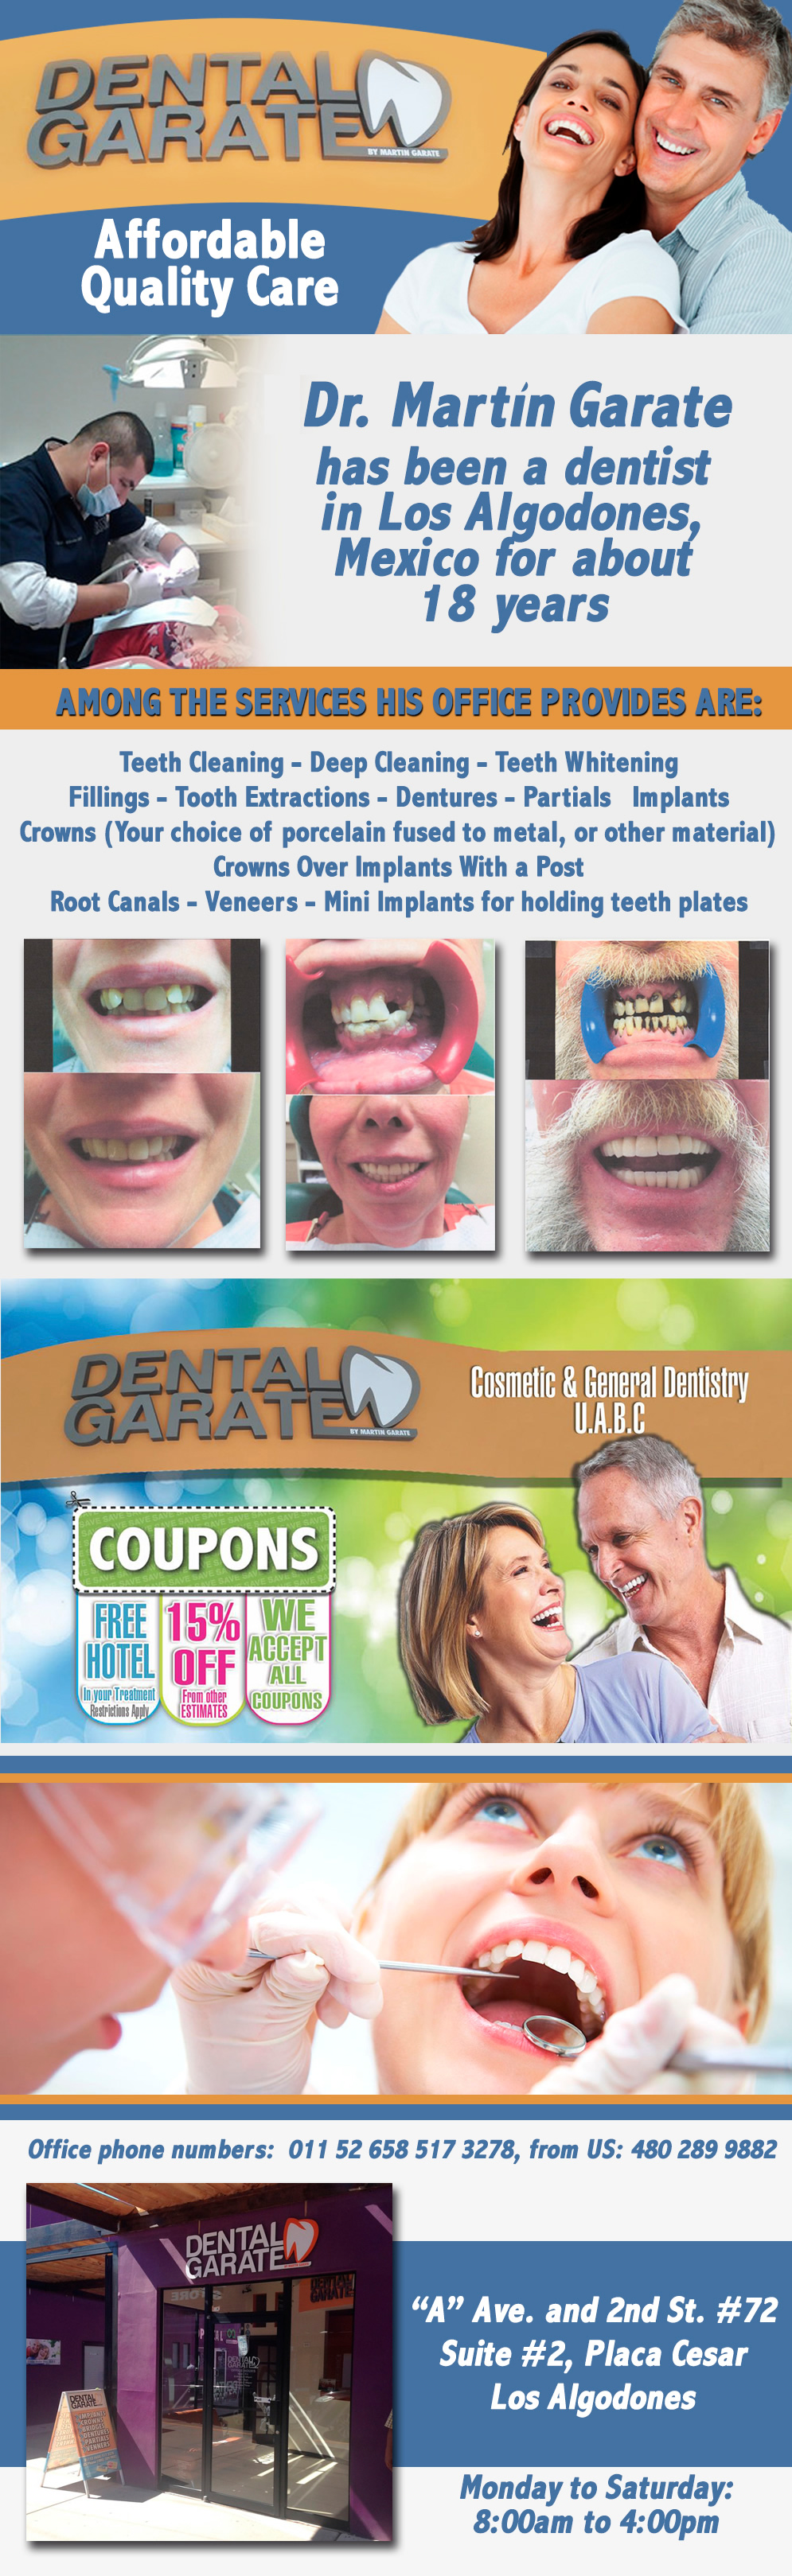 DENTAL GARATE - Martín Garate D.D.S. in Algodones  in Algodones  COSMETIC & GENERAL DENTISTRY, IMPLANTS, CROWNS, BRIDGES, DENTURES, PARTIALS, VENNERS.                 dentistas dentist dentista medico medicina dental care dental clinic